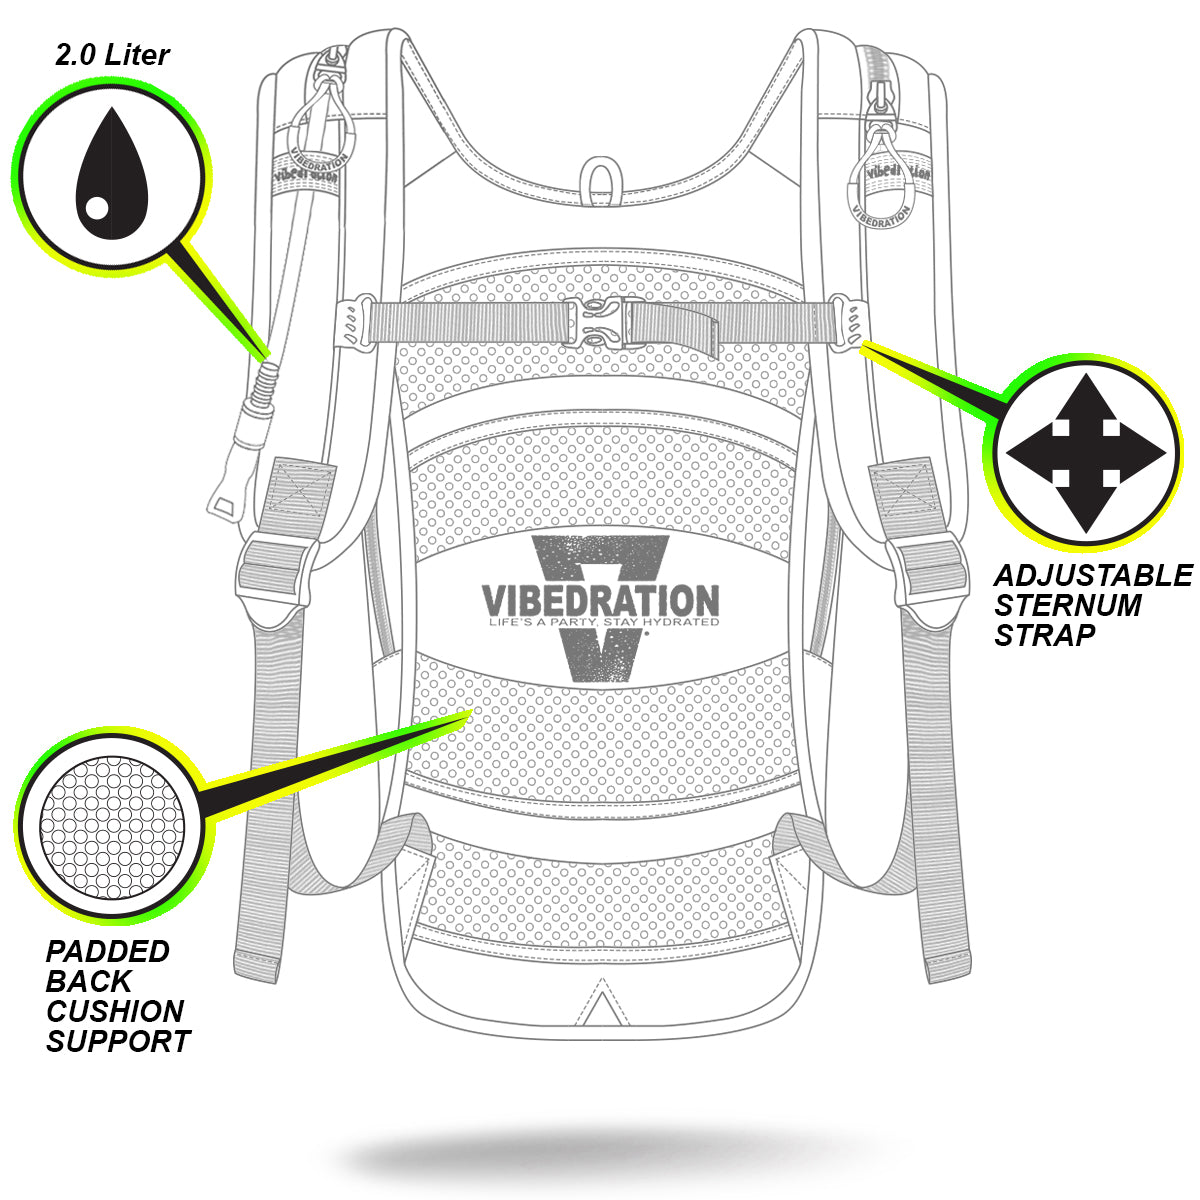 VIP 2L Hydration Backpack Features Padded Straps and Backside